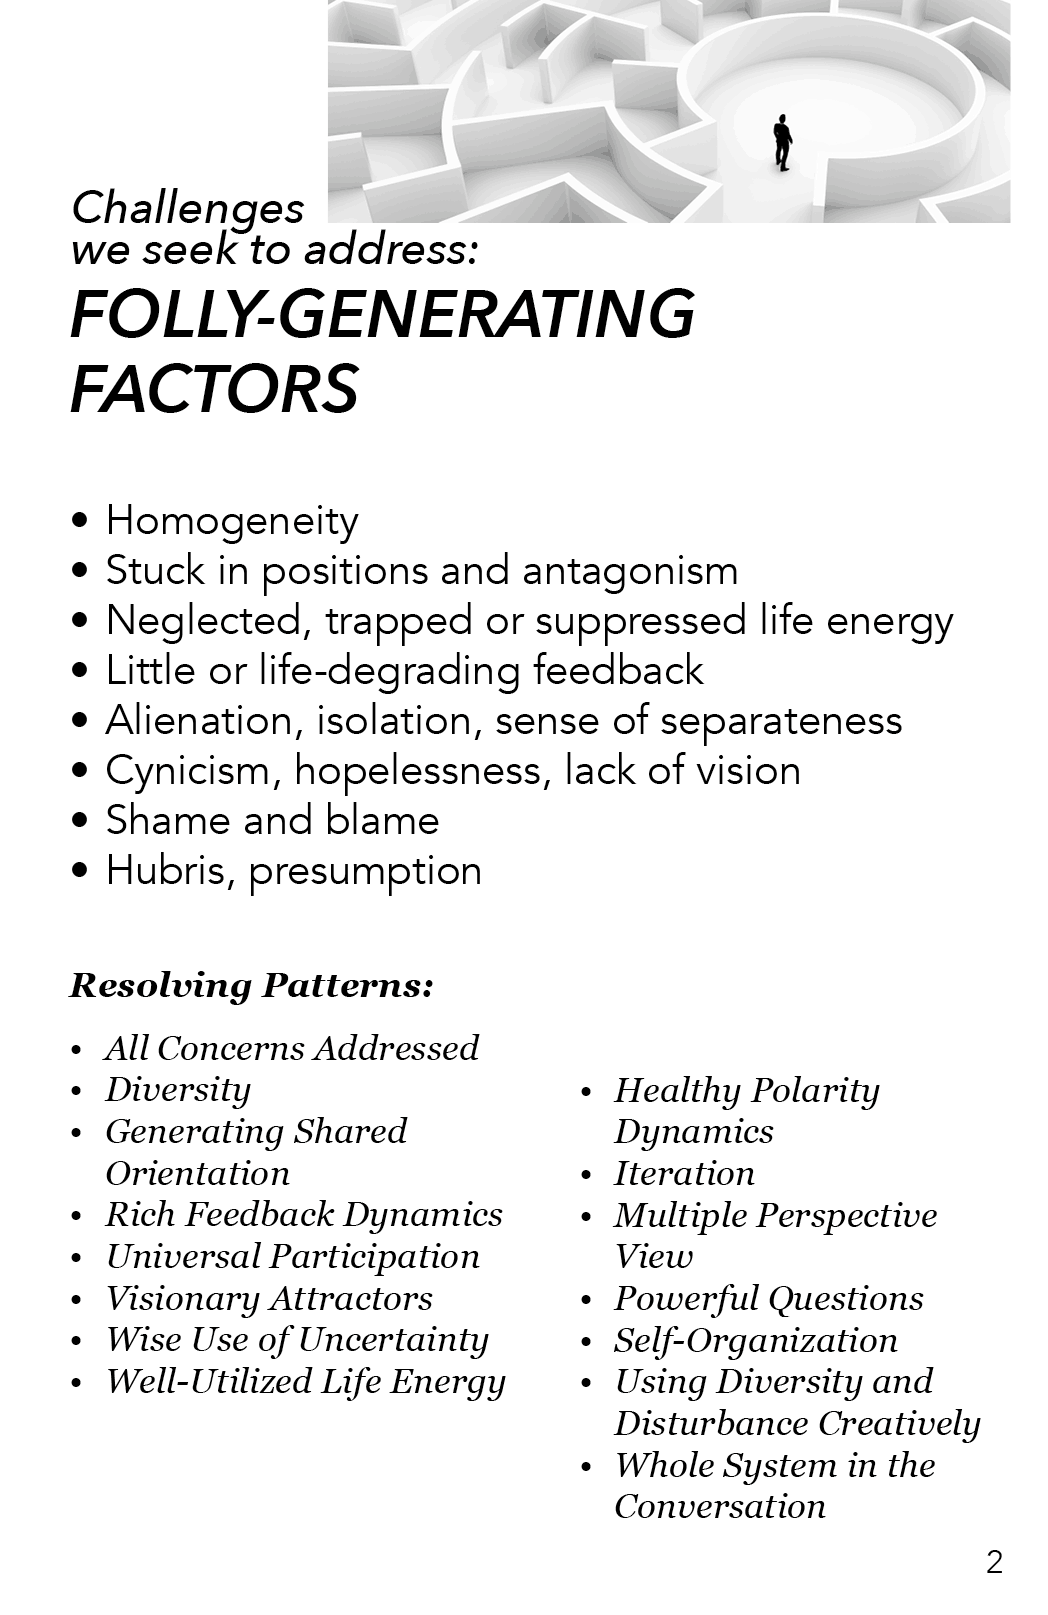 AAA - Folly Generating Factors